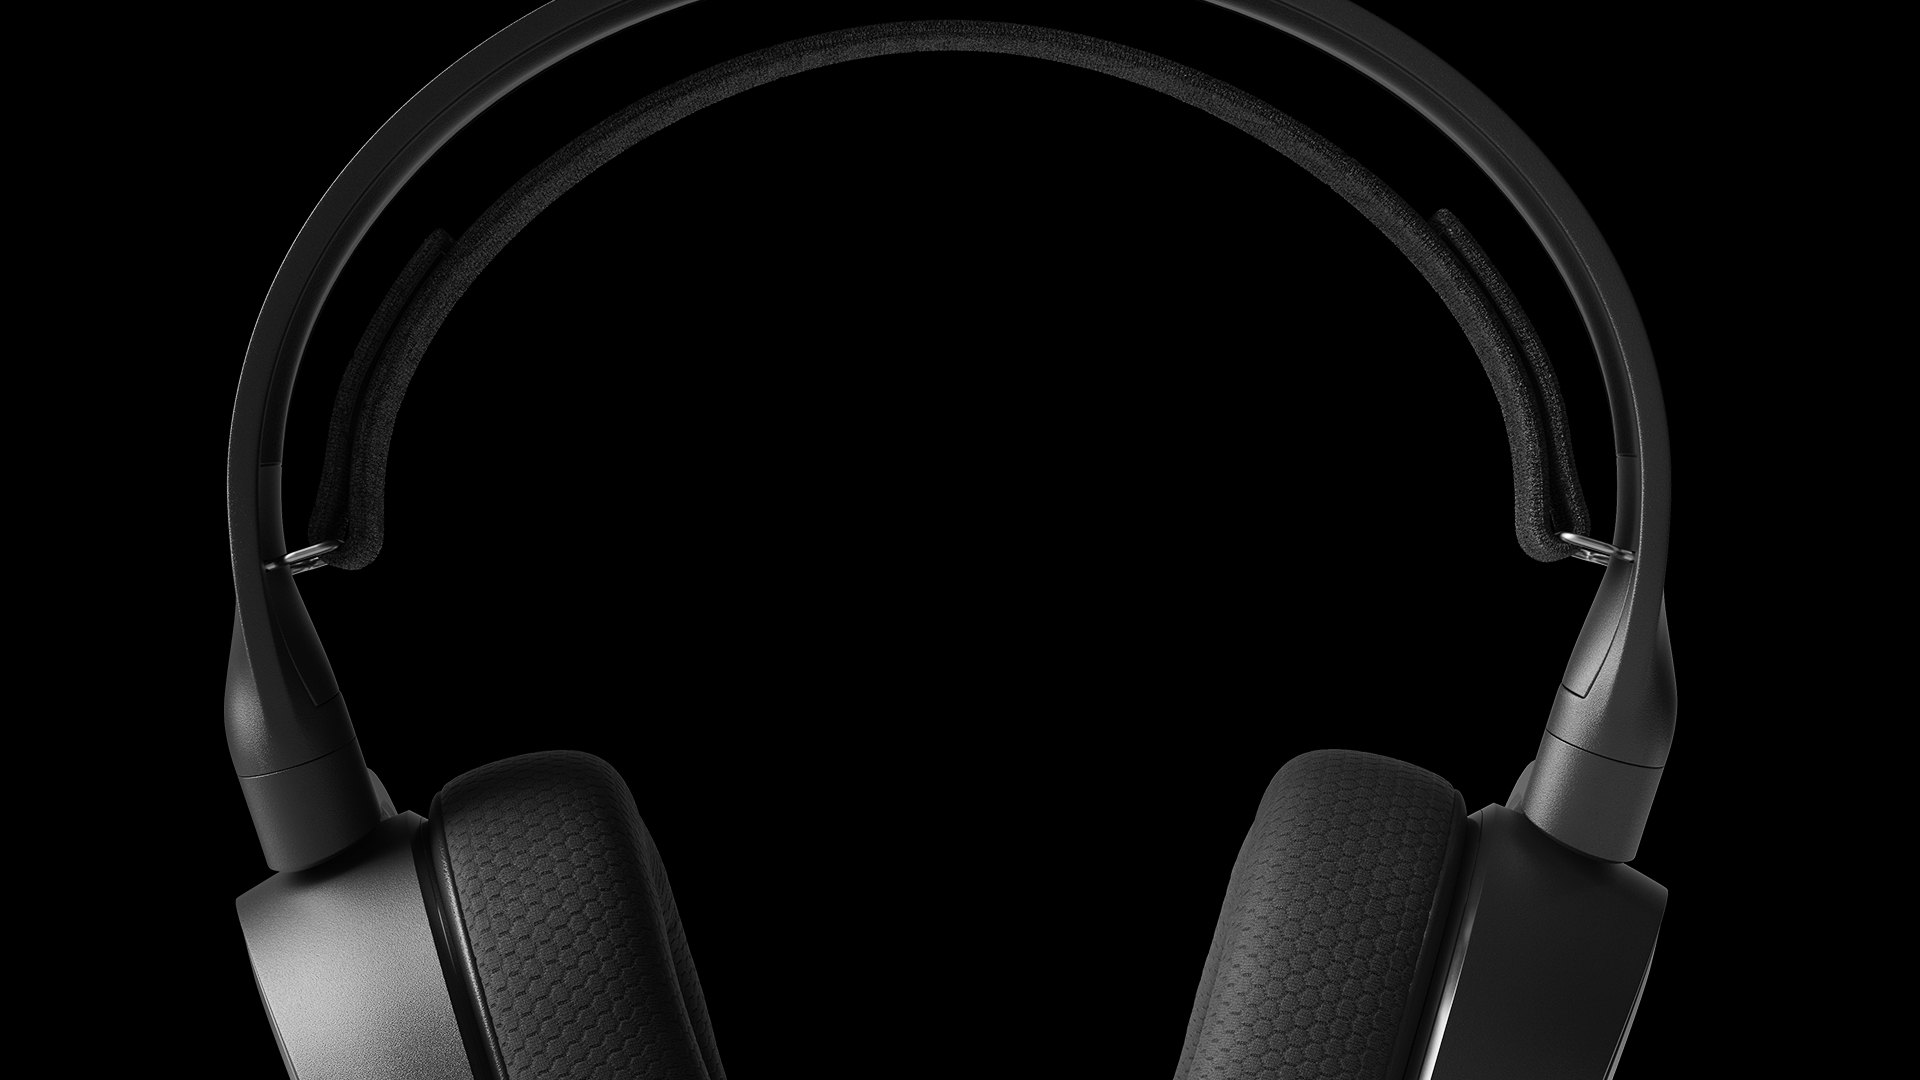 Arctis 5 macro level image to show extreme detail